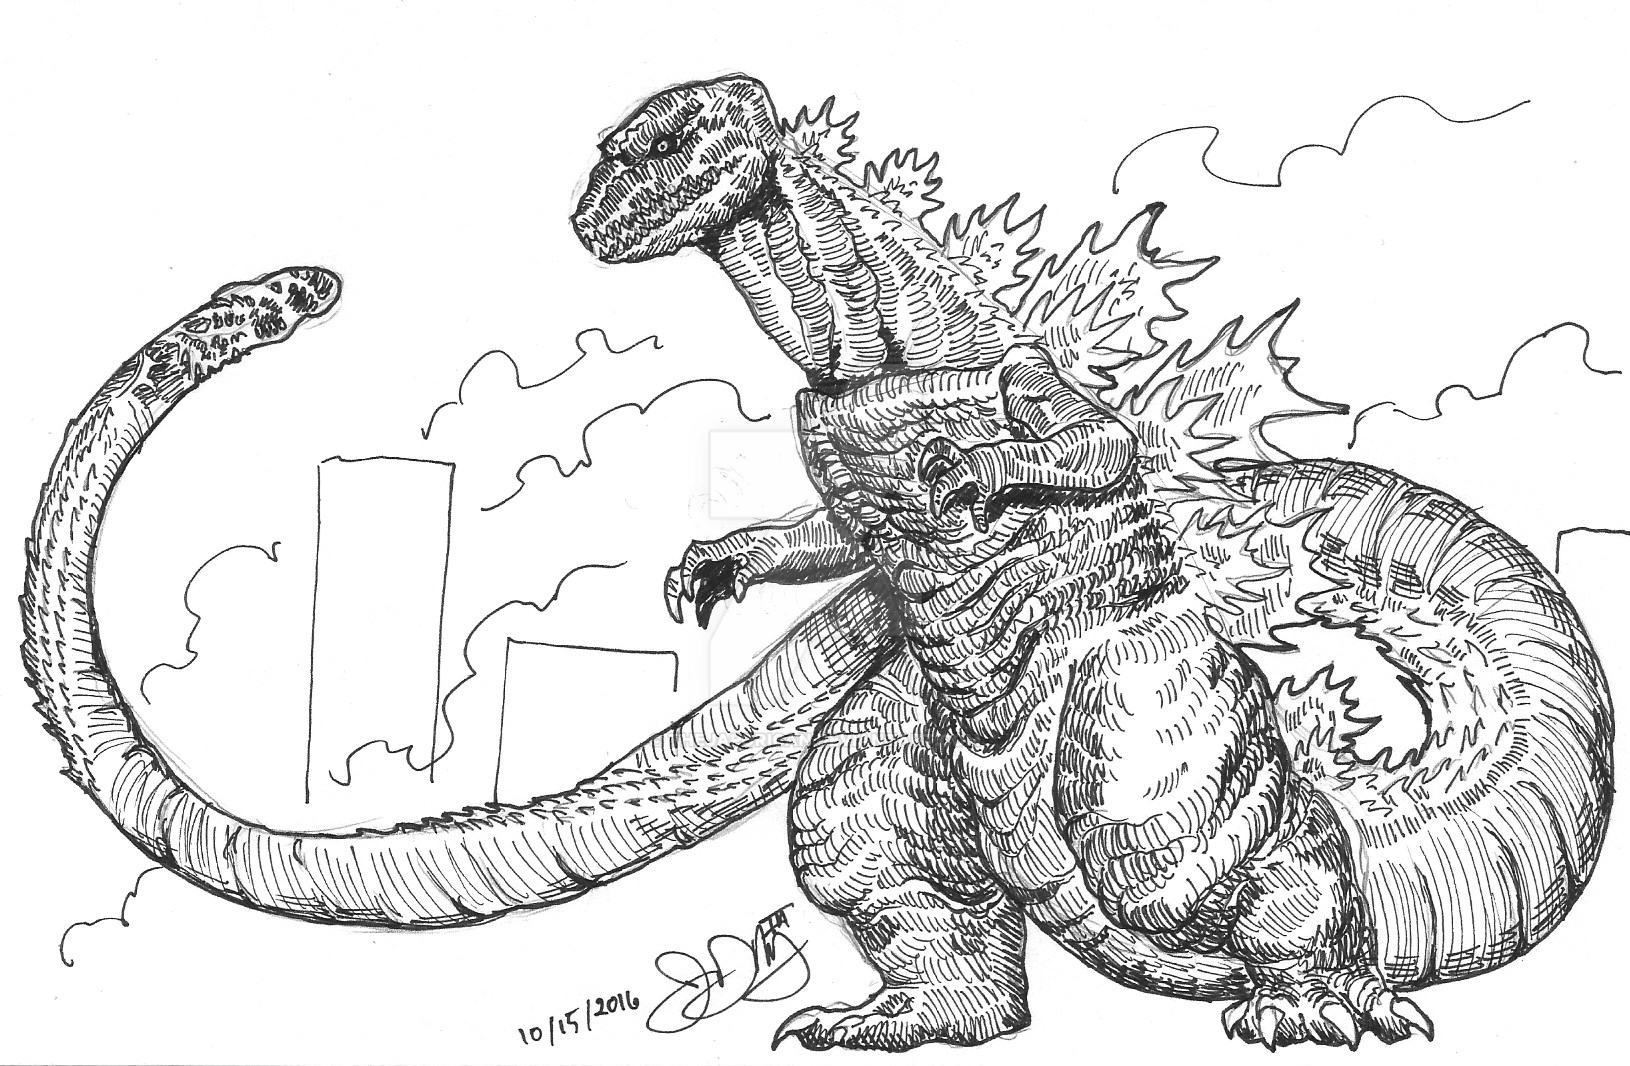 godzilla coloring pictures godzilla coloring pages to print at getdrawings free godzilla pictures coloring